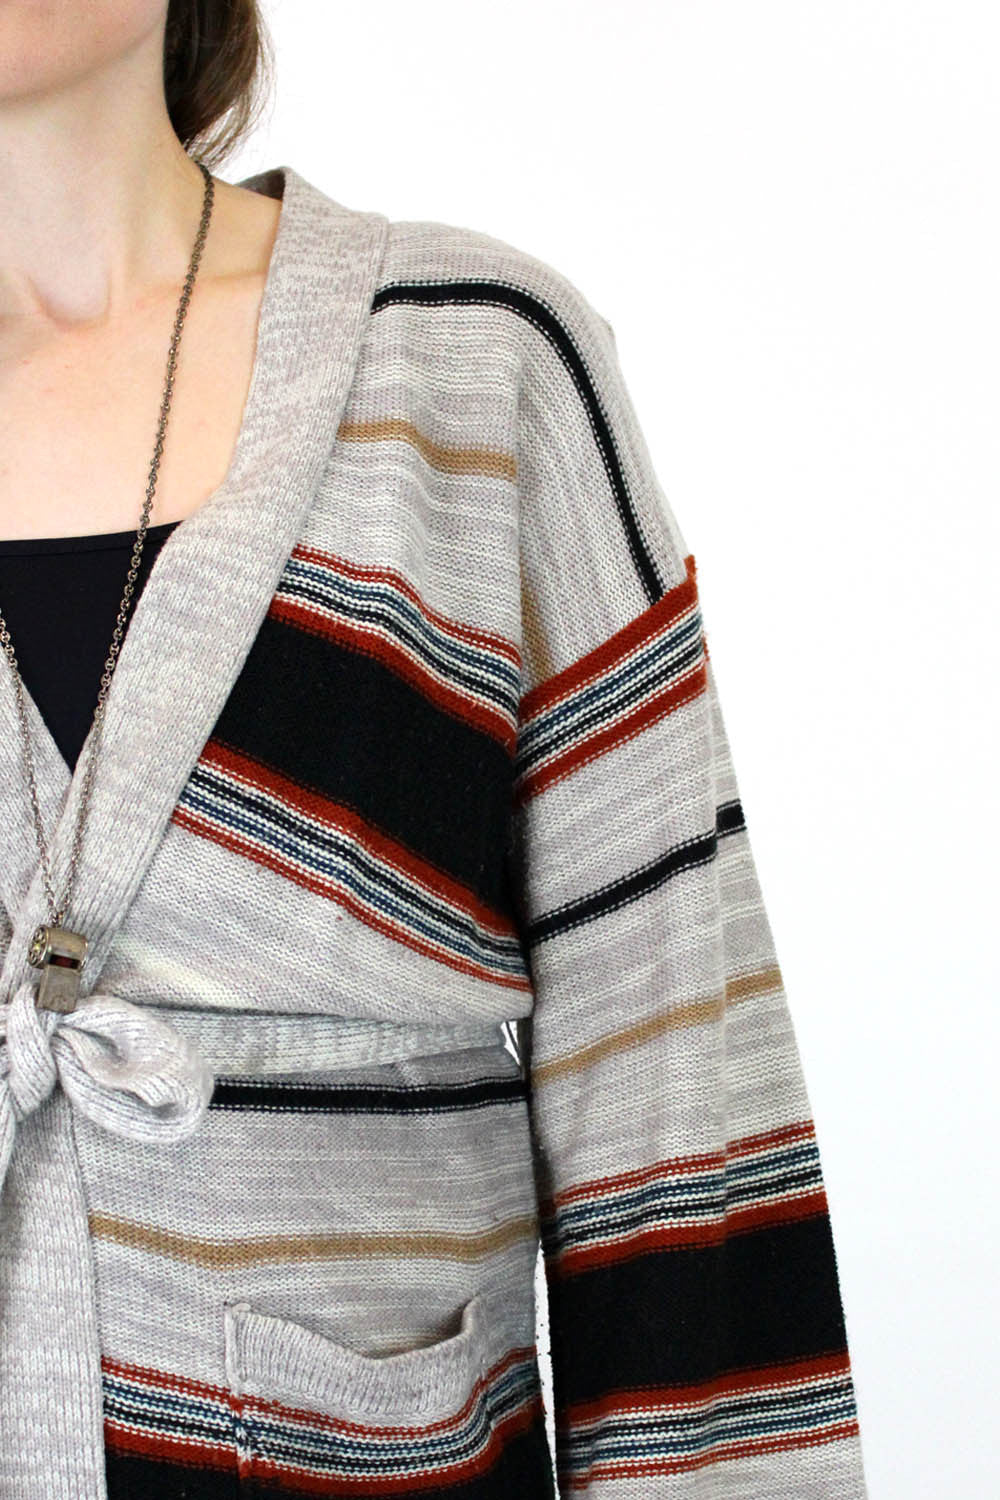 70s striped sweater jacket detail